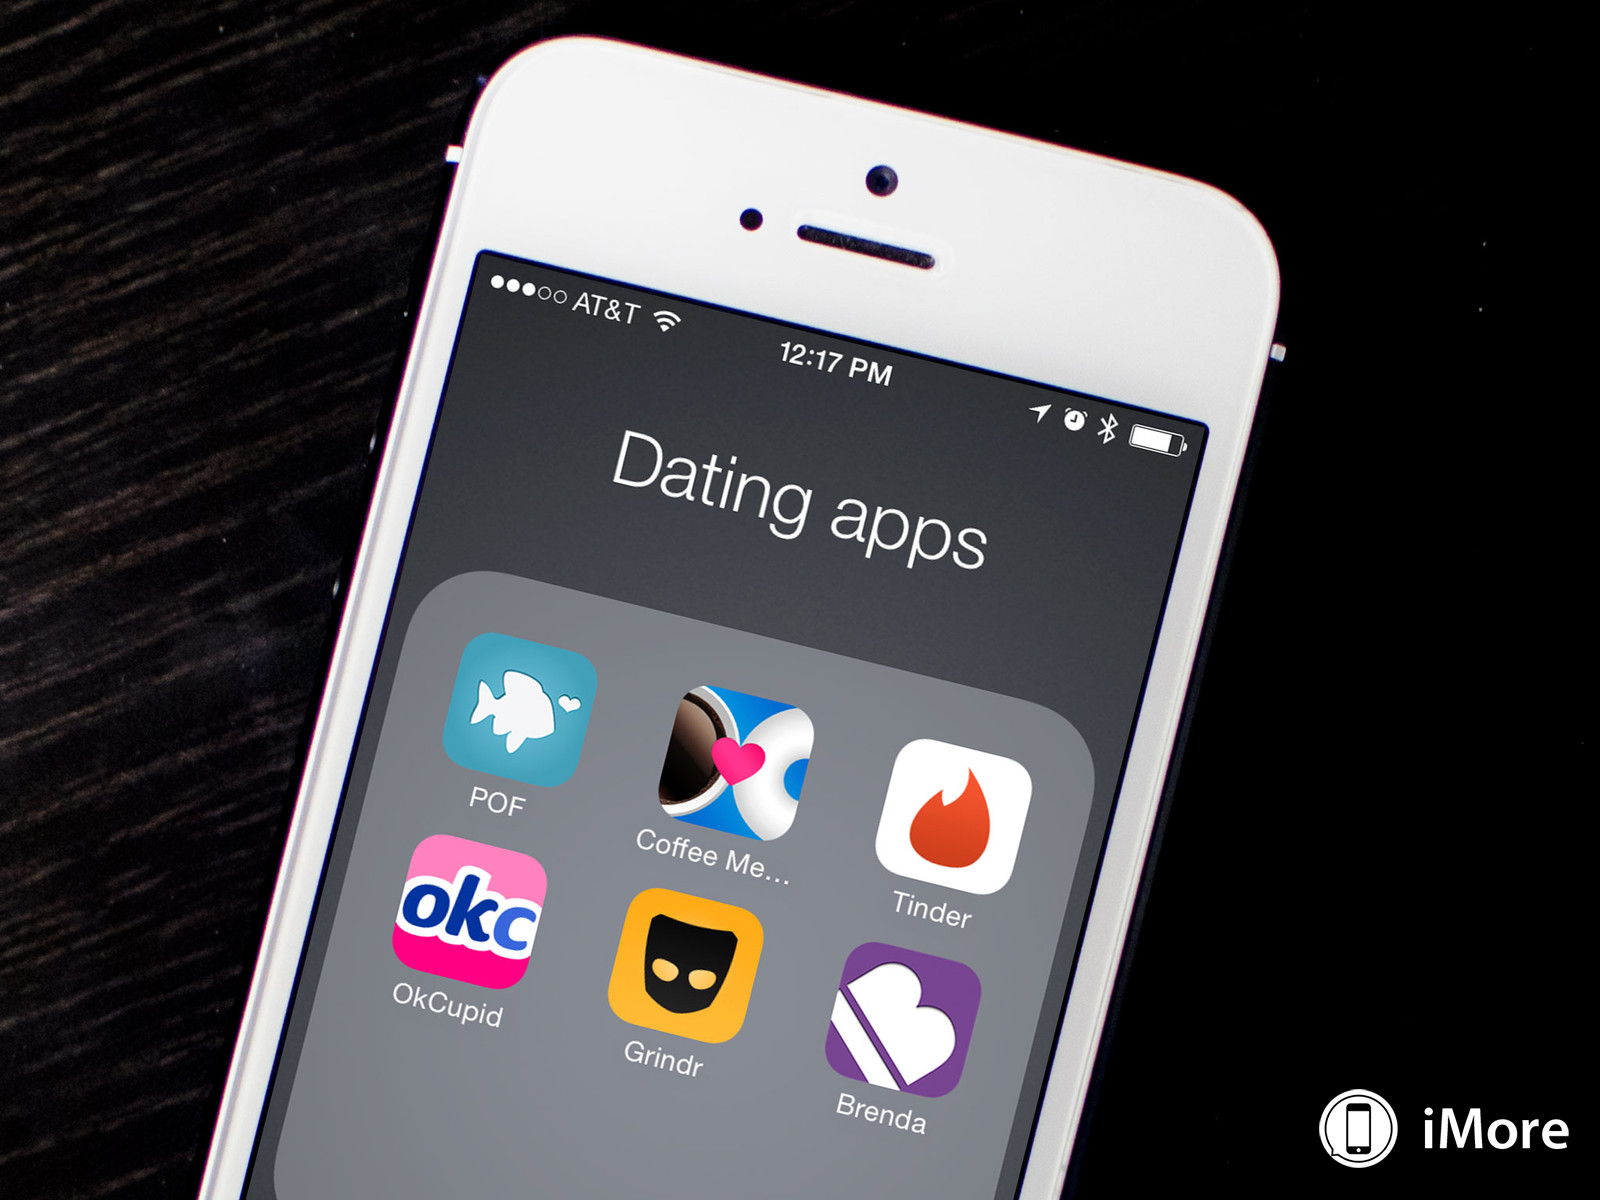 Probleme mit dating-apps